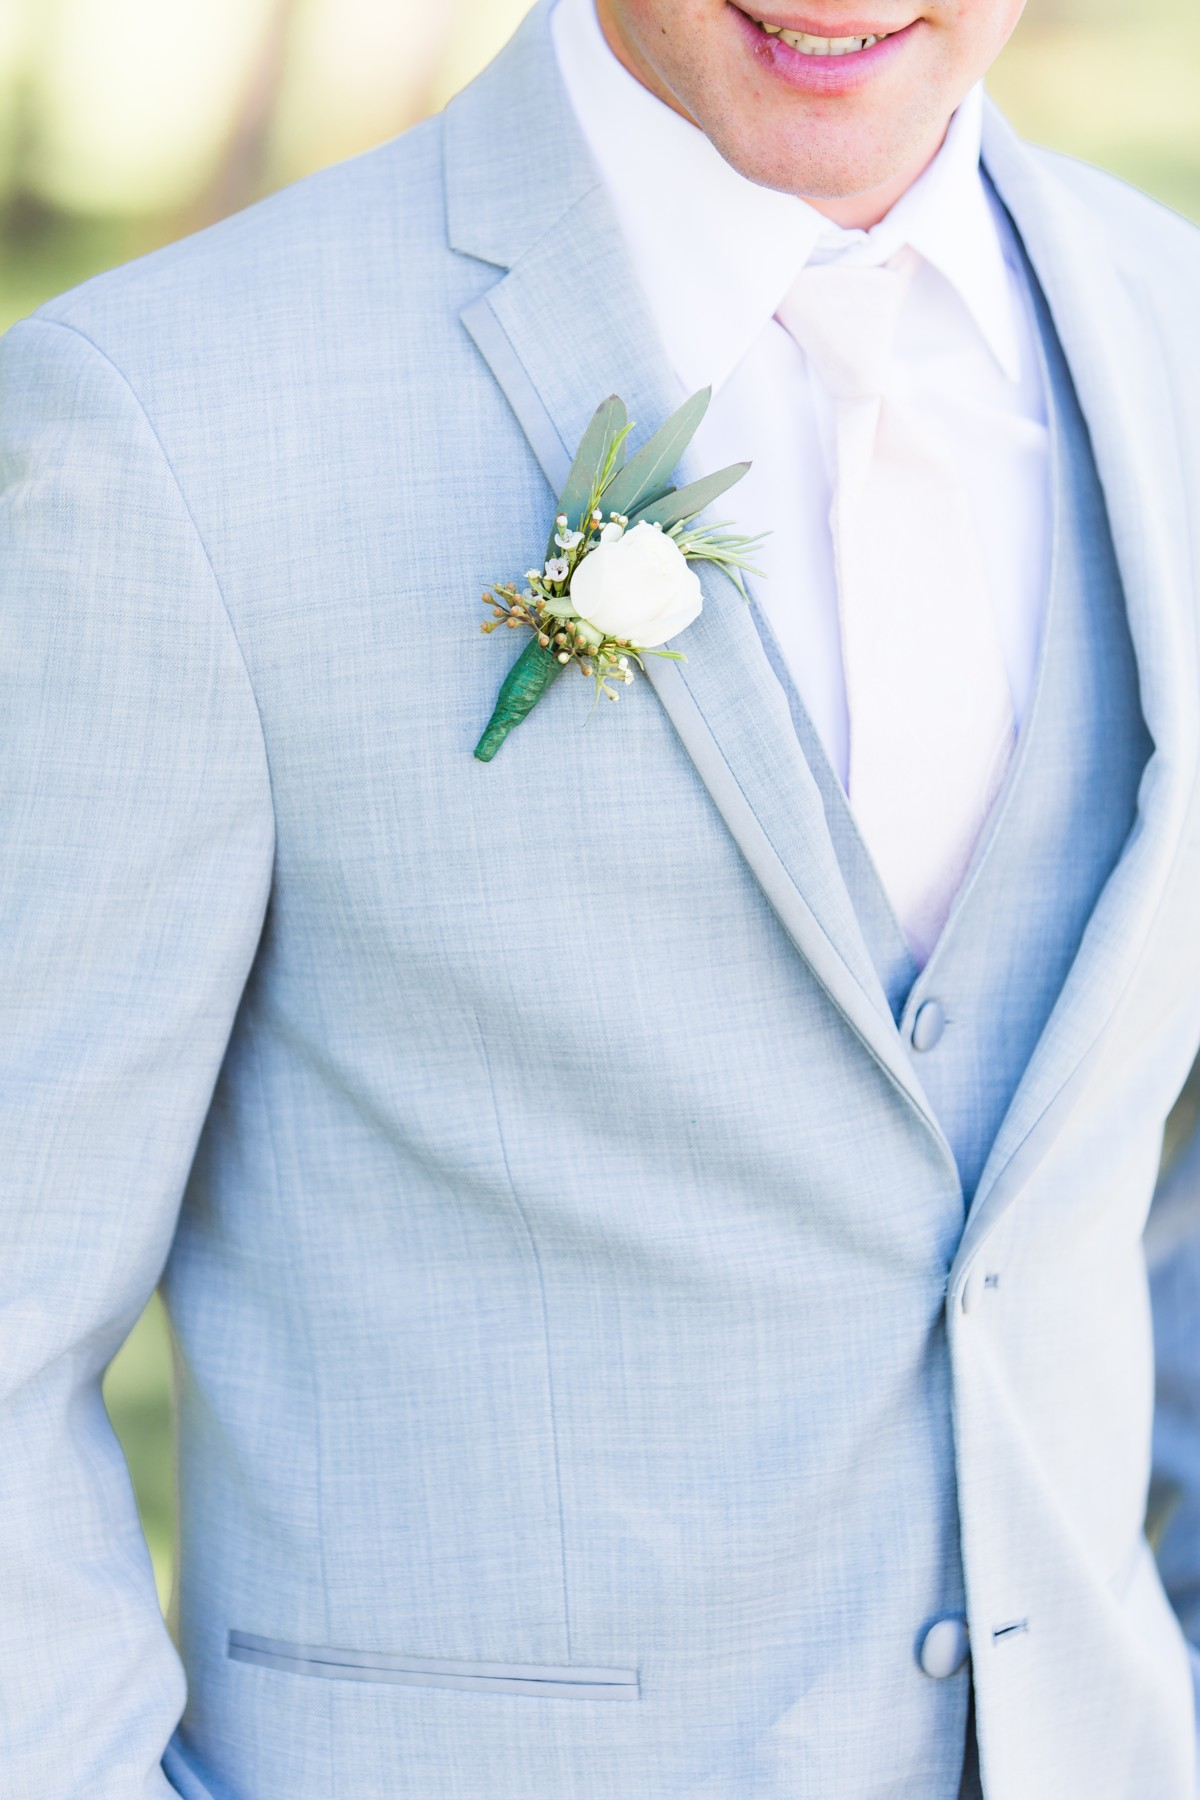 B&B Photography Lake Tahoe wedding - boutonniere